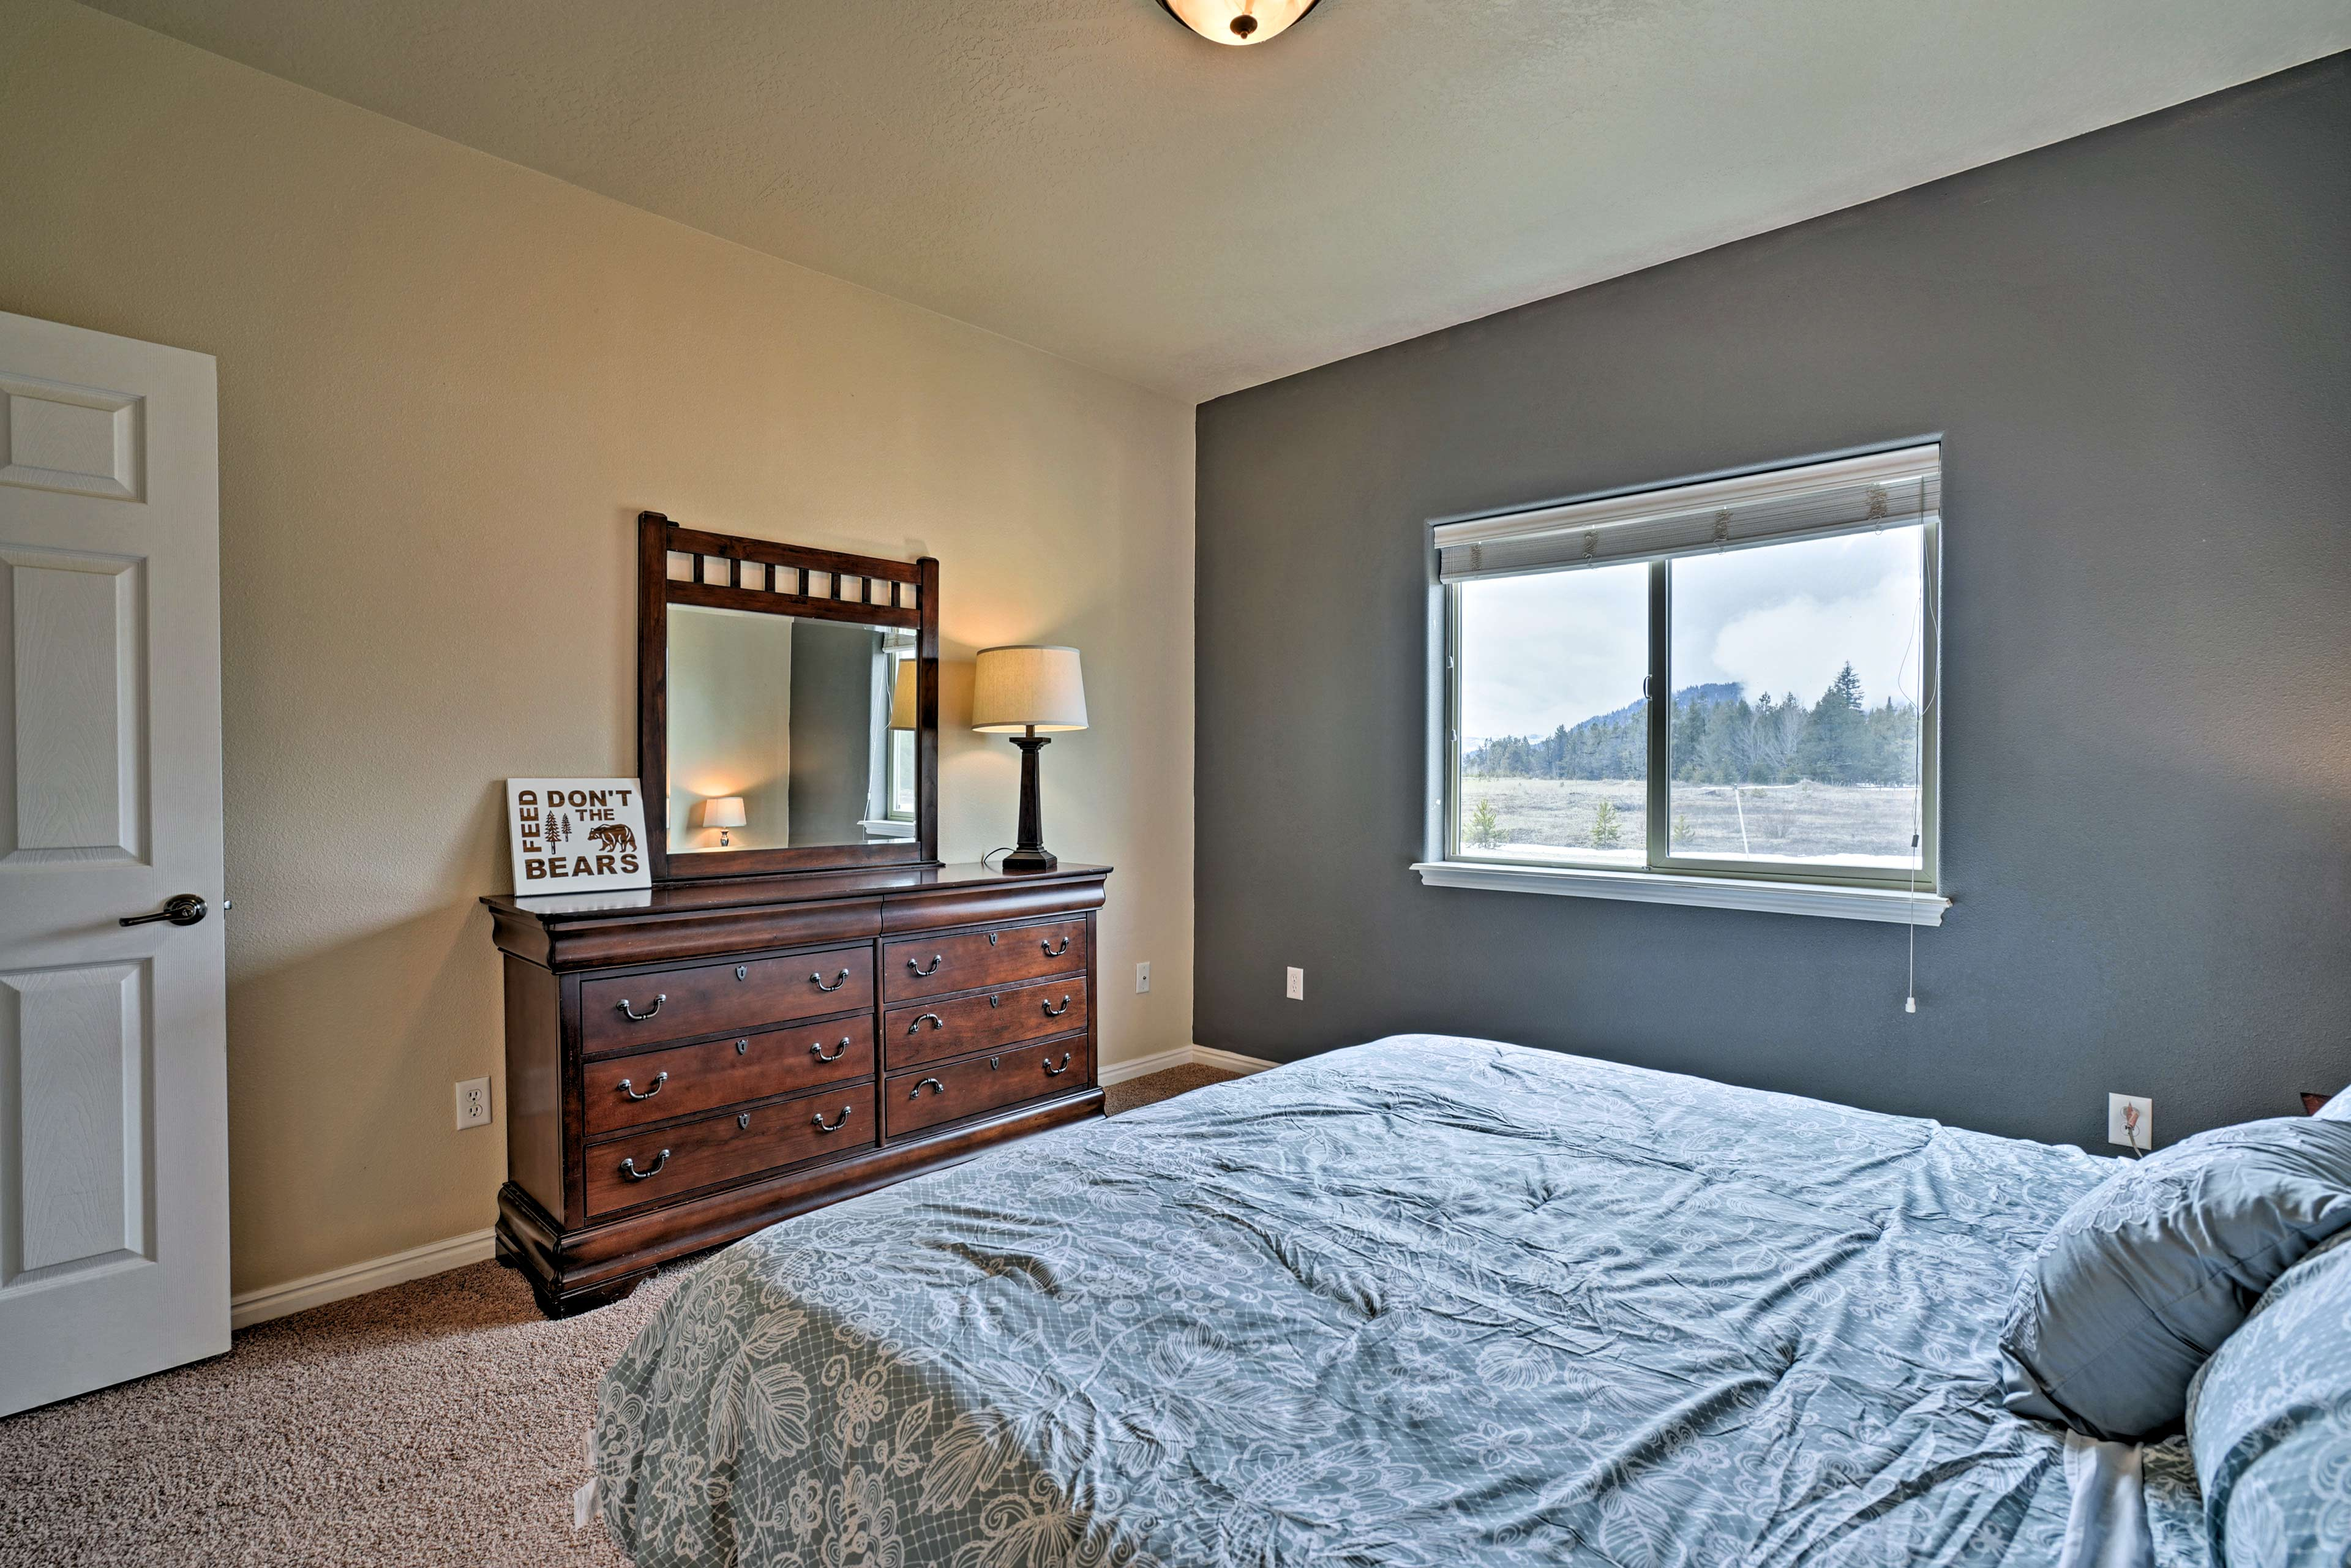 The master bedroom features a lovely king-sized bed.